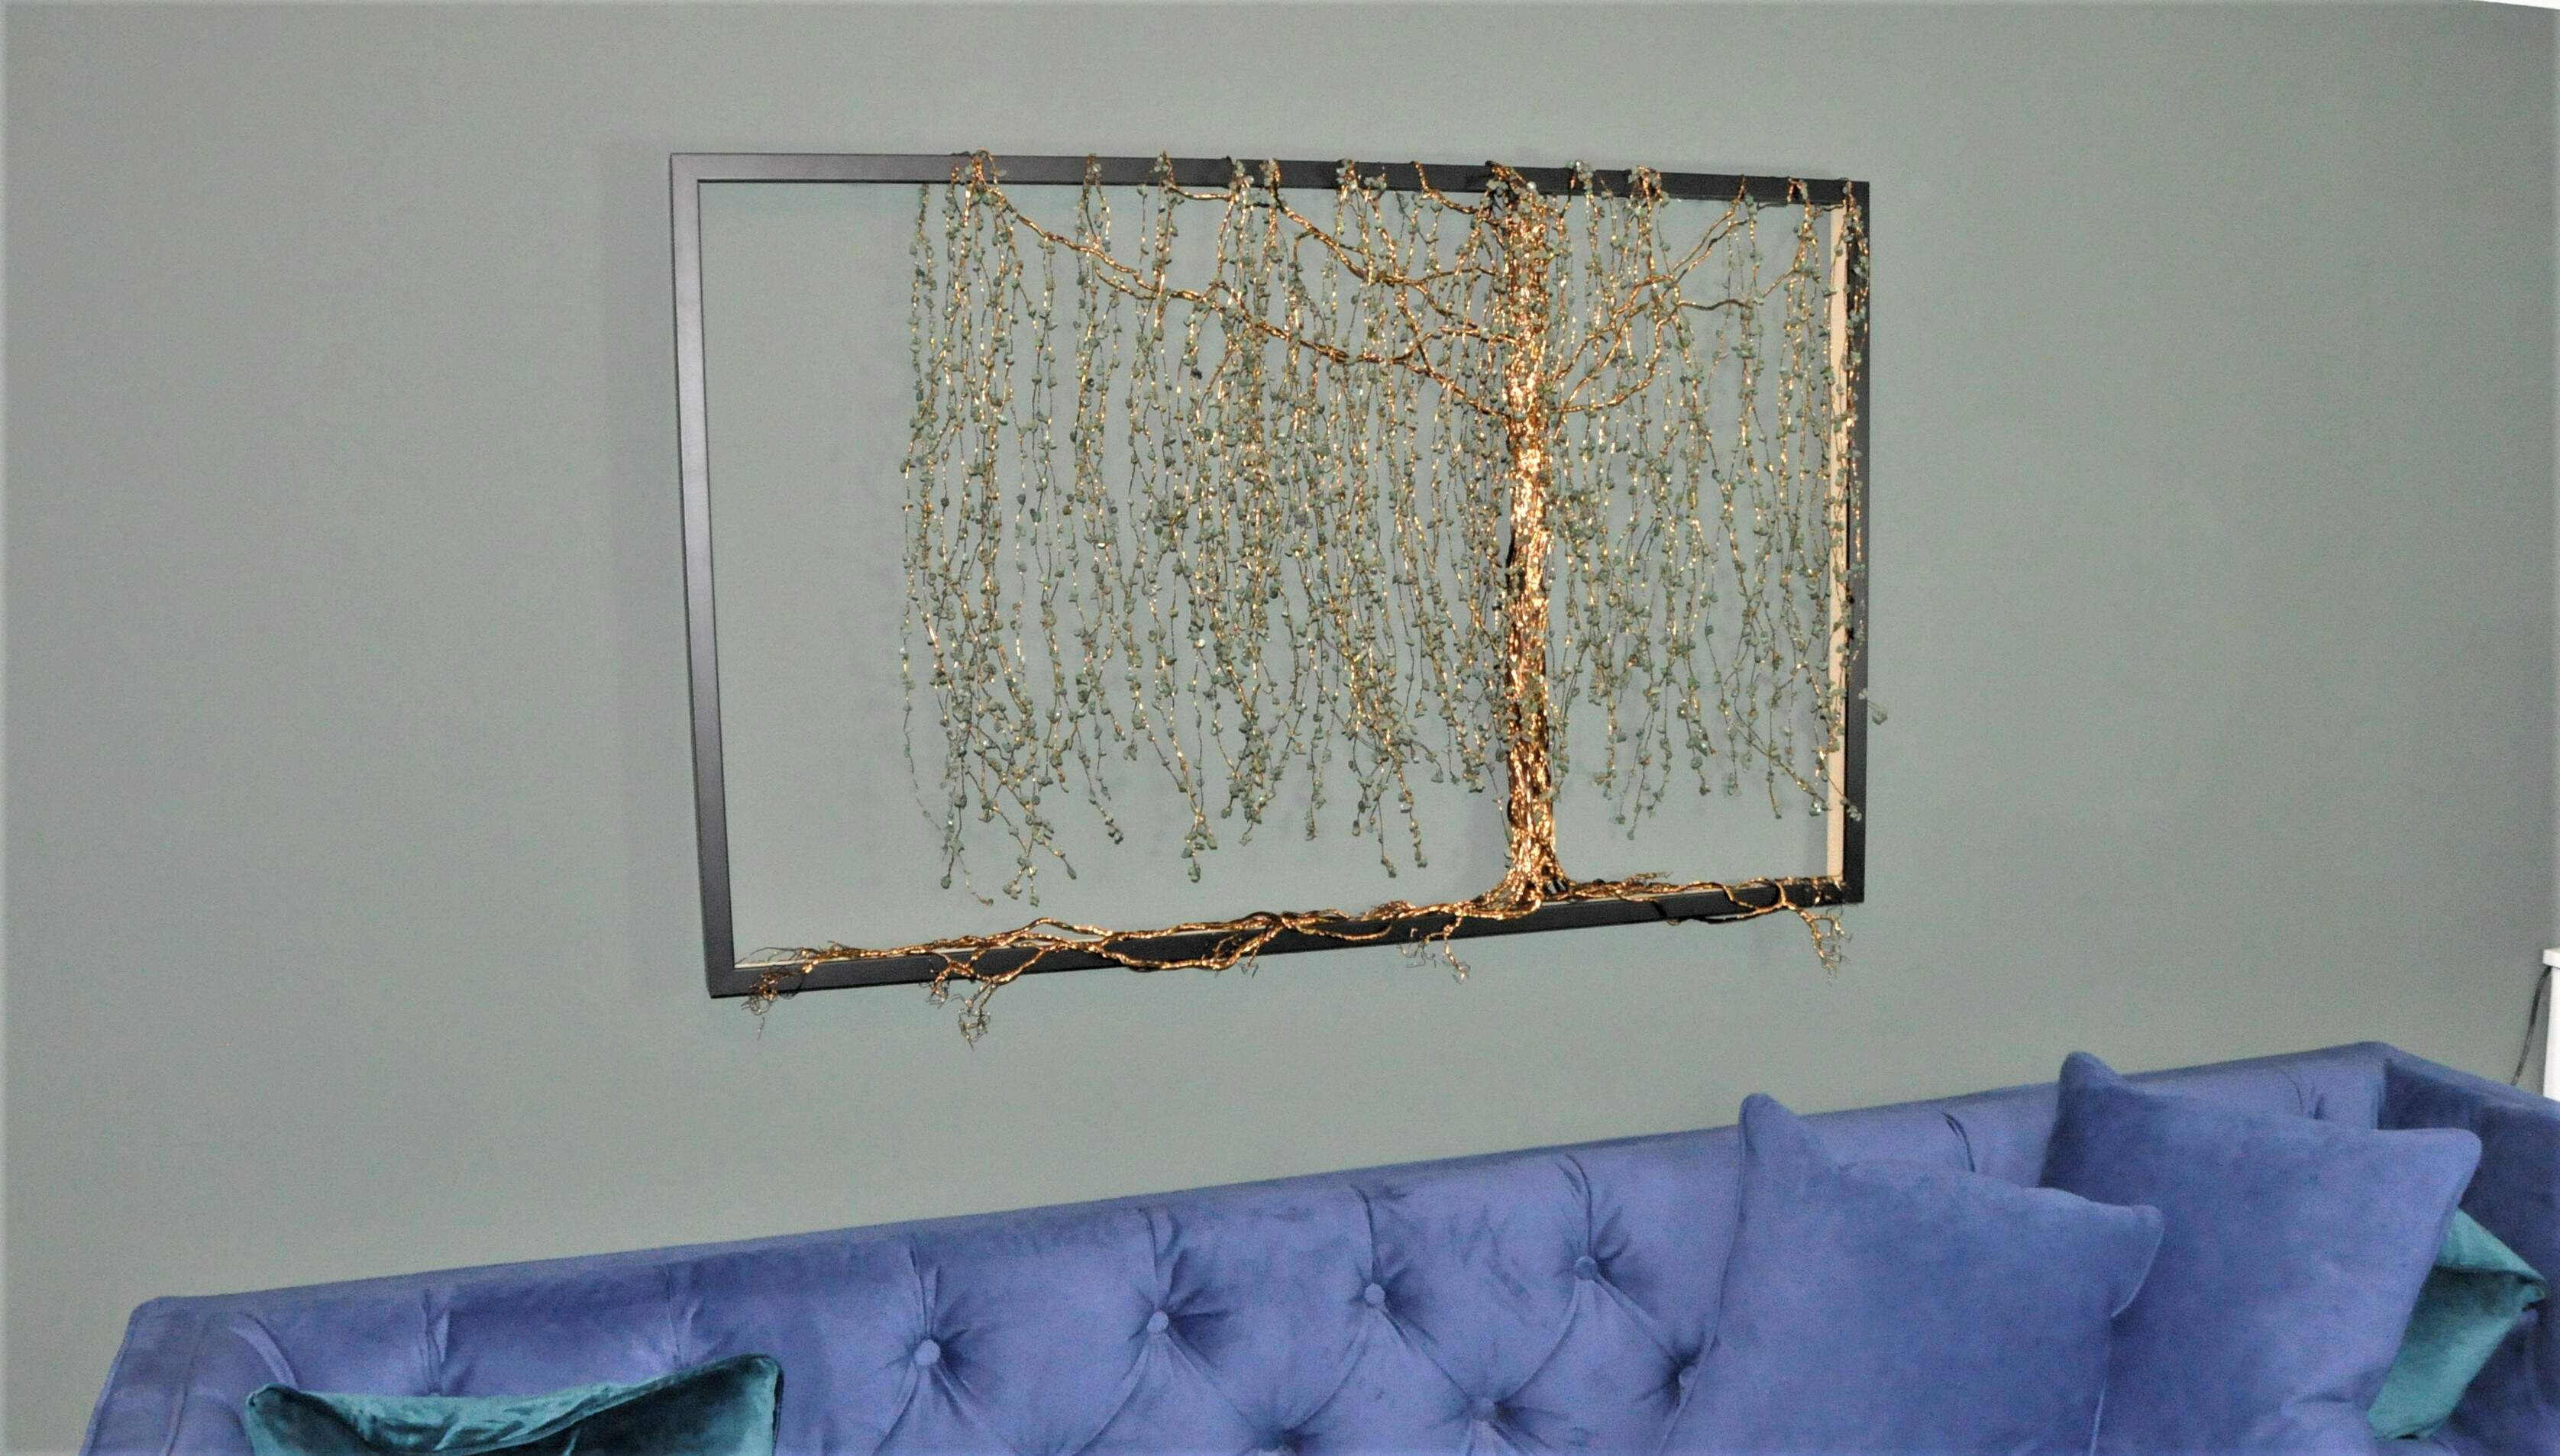 Sculpture using antique bronze and aventurine to create a willow tree cascading from the frame